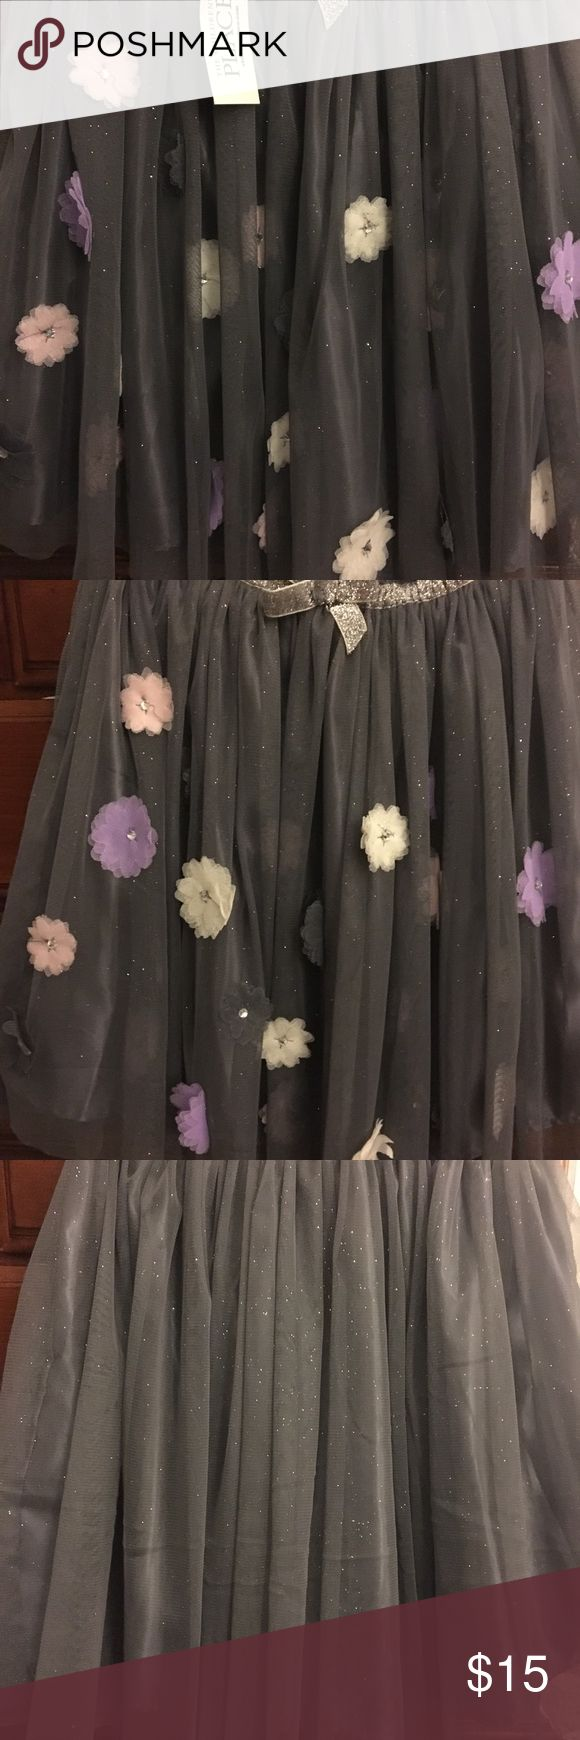 Kids ToTo Beautiful ToTo with flowers that has Lil diamond stubs in center of flower, silver sequins bow in center of waist band  and linen under for extra comfort The Children's Place Bottoms Skirts